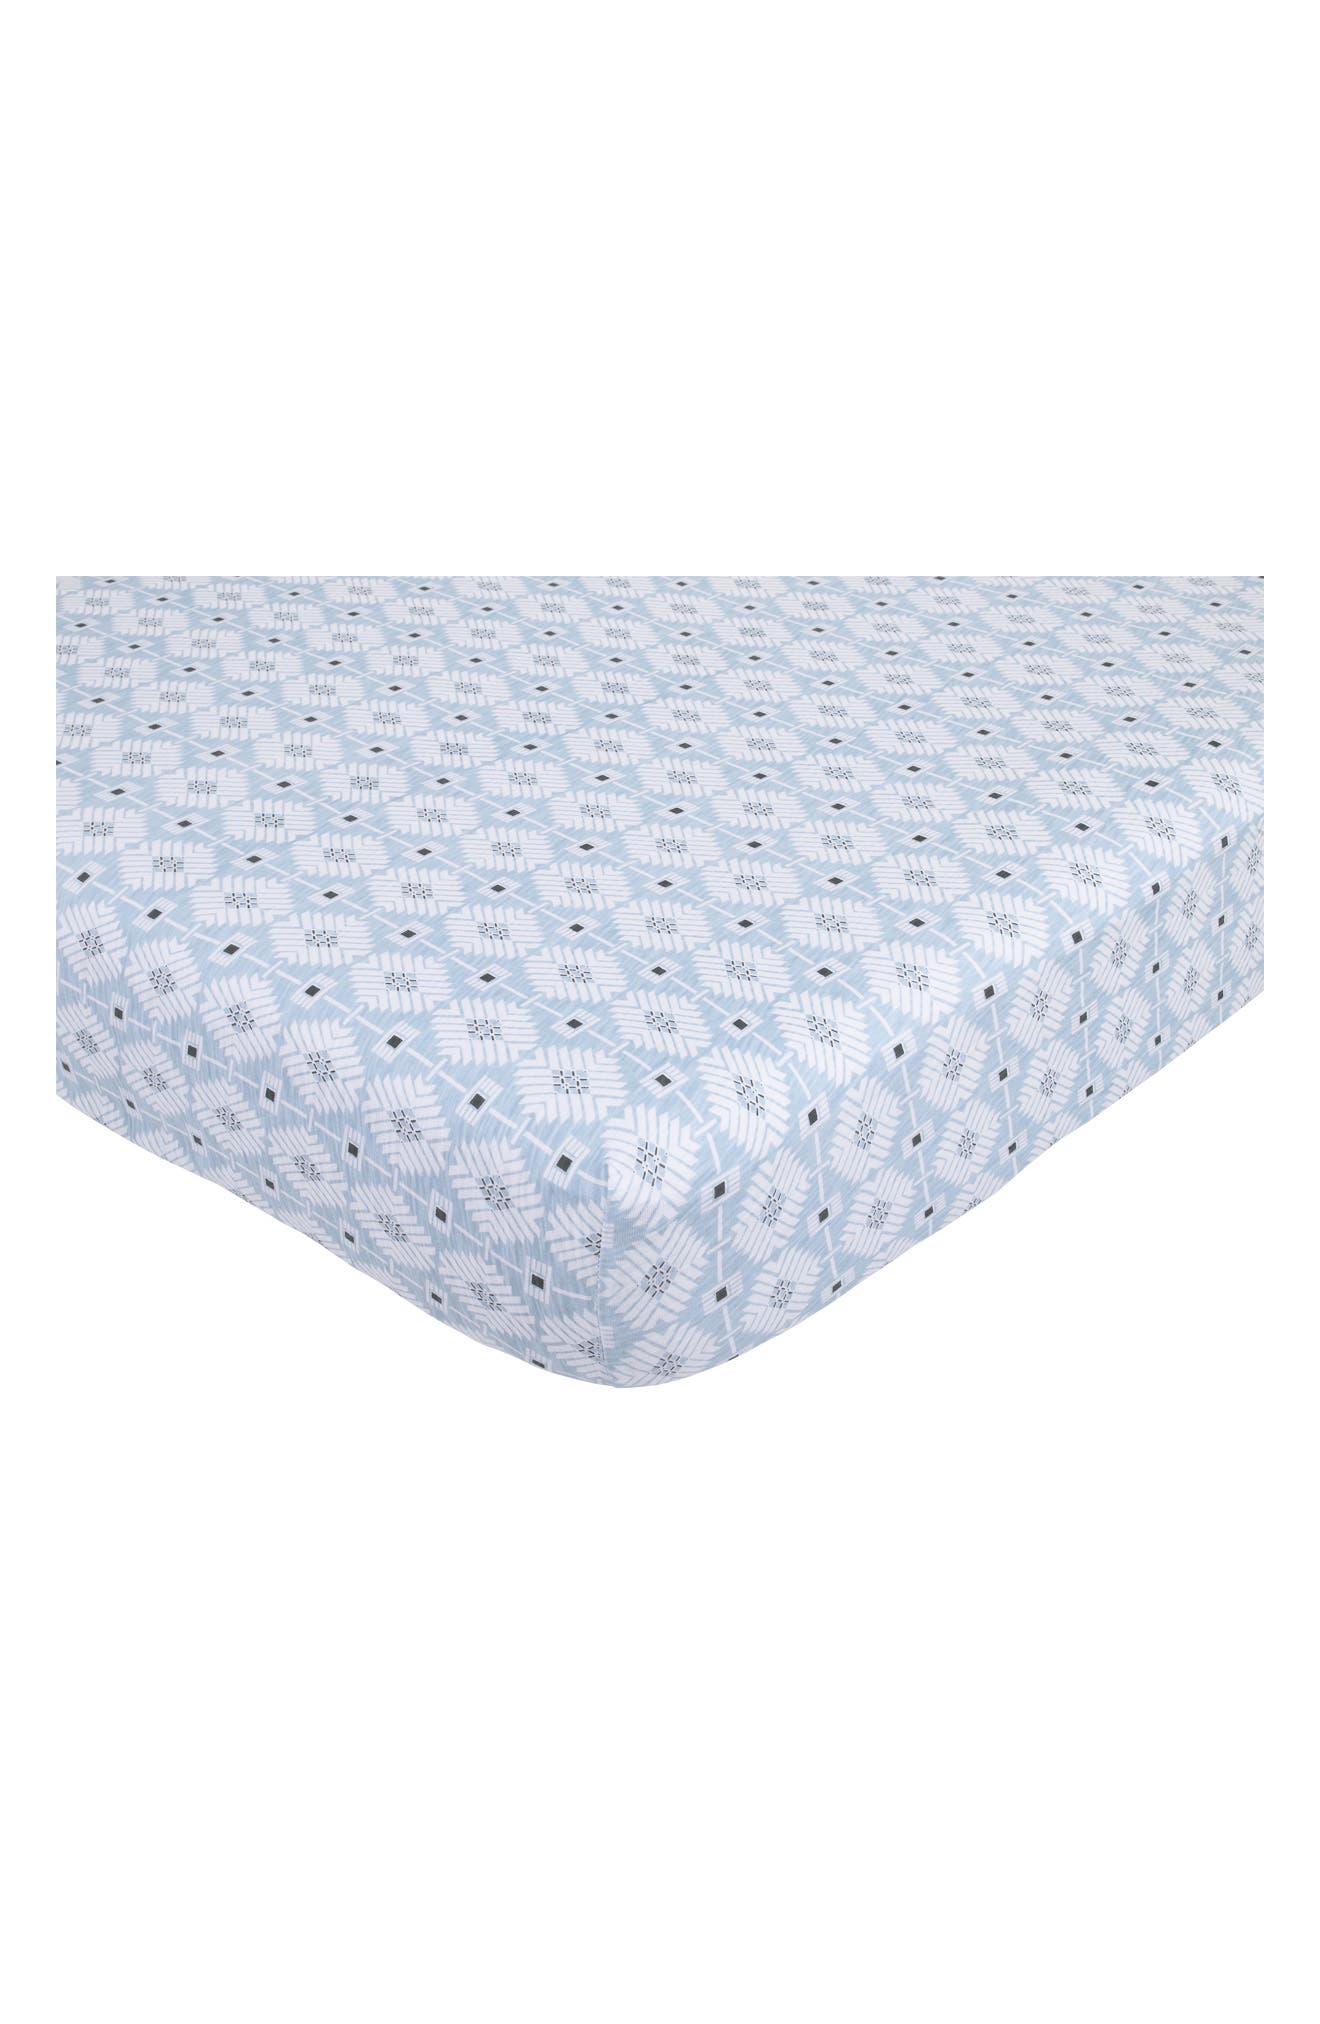 Petunia Pickle Bottom Southwest Skies Fitted Sheet